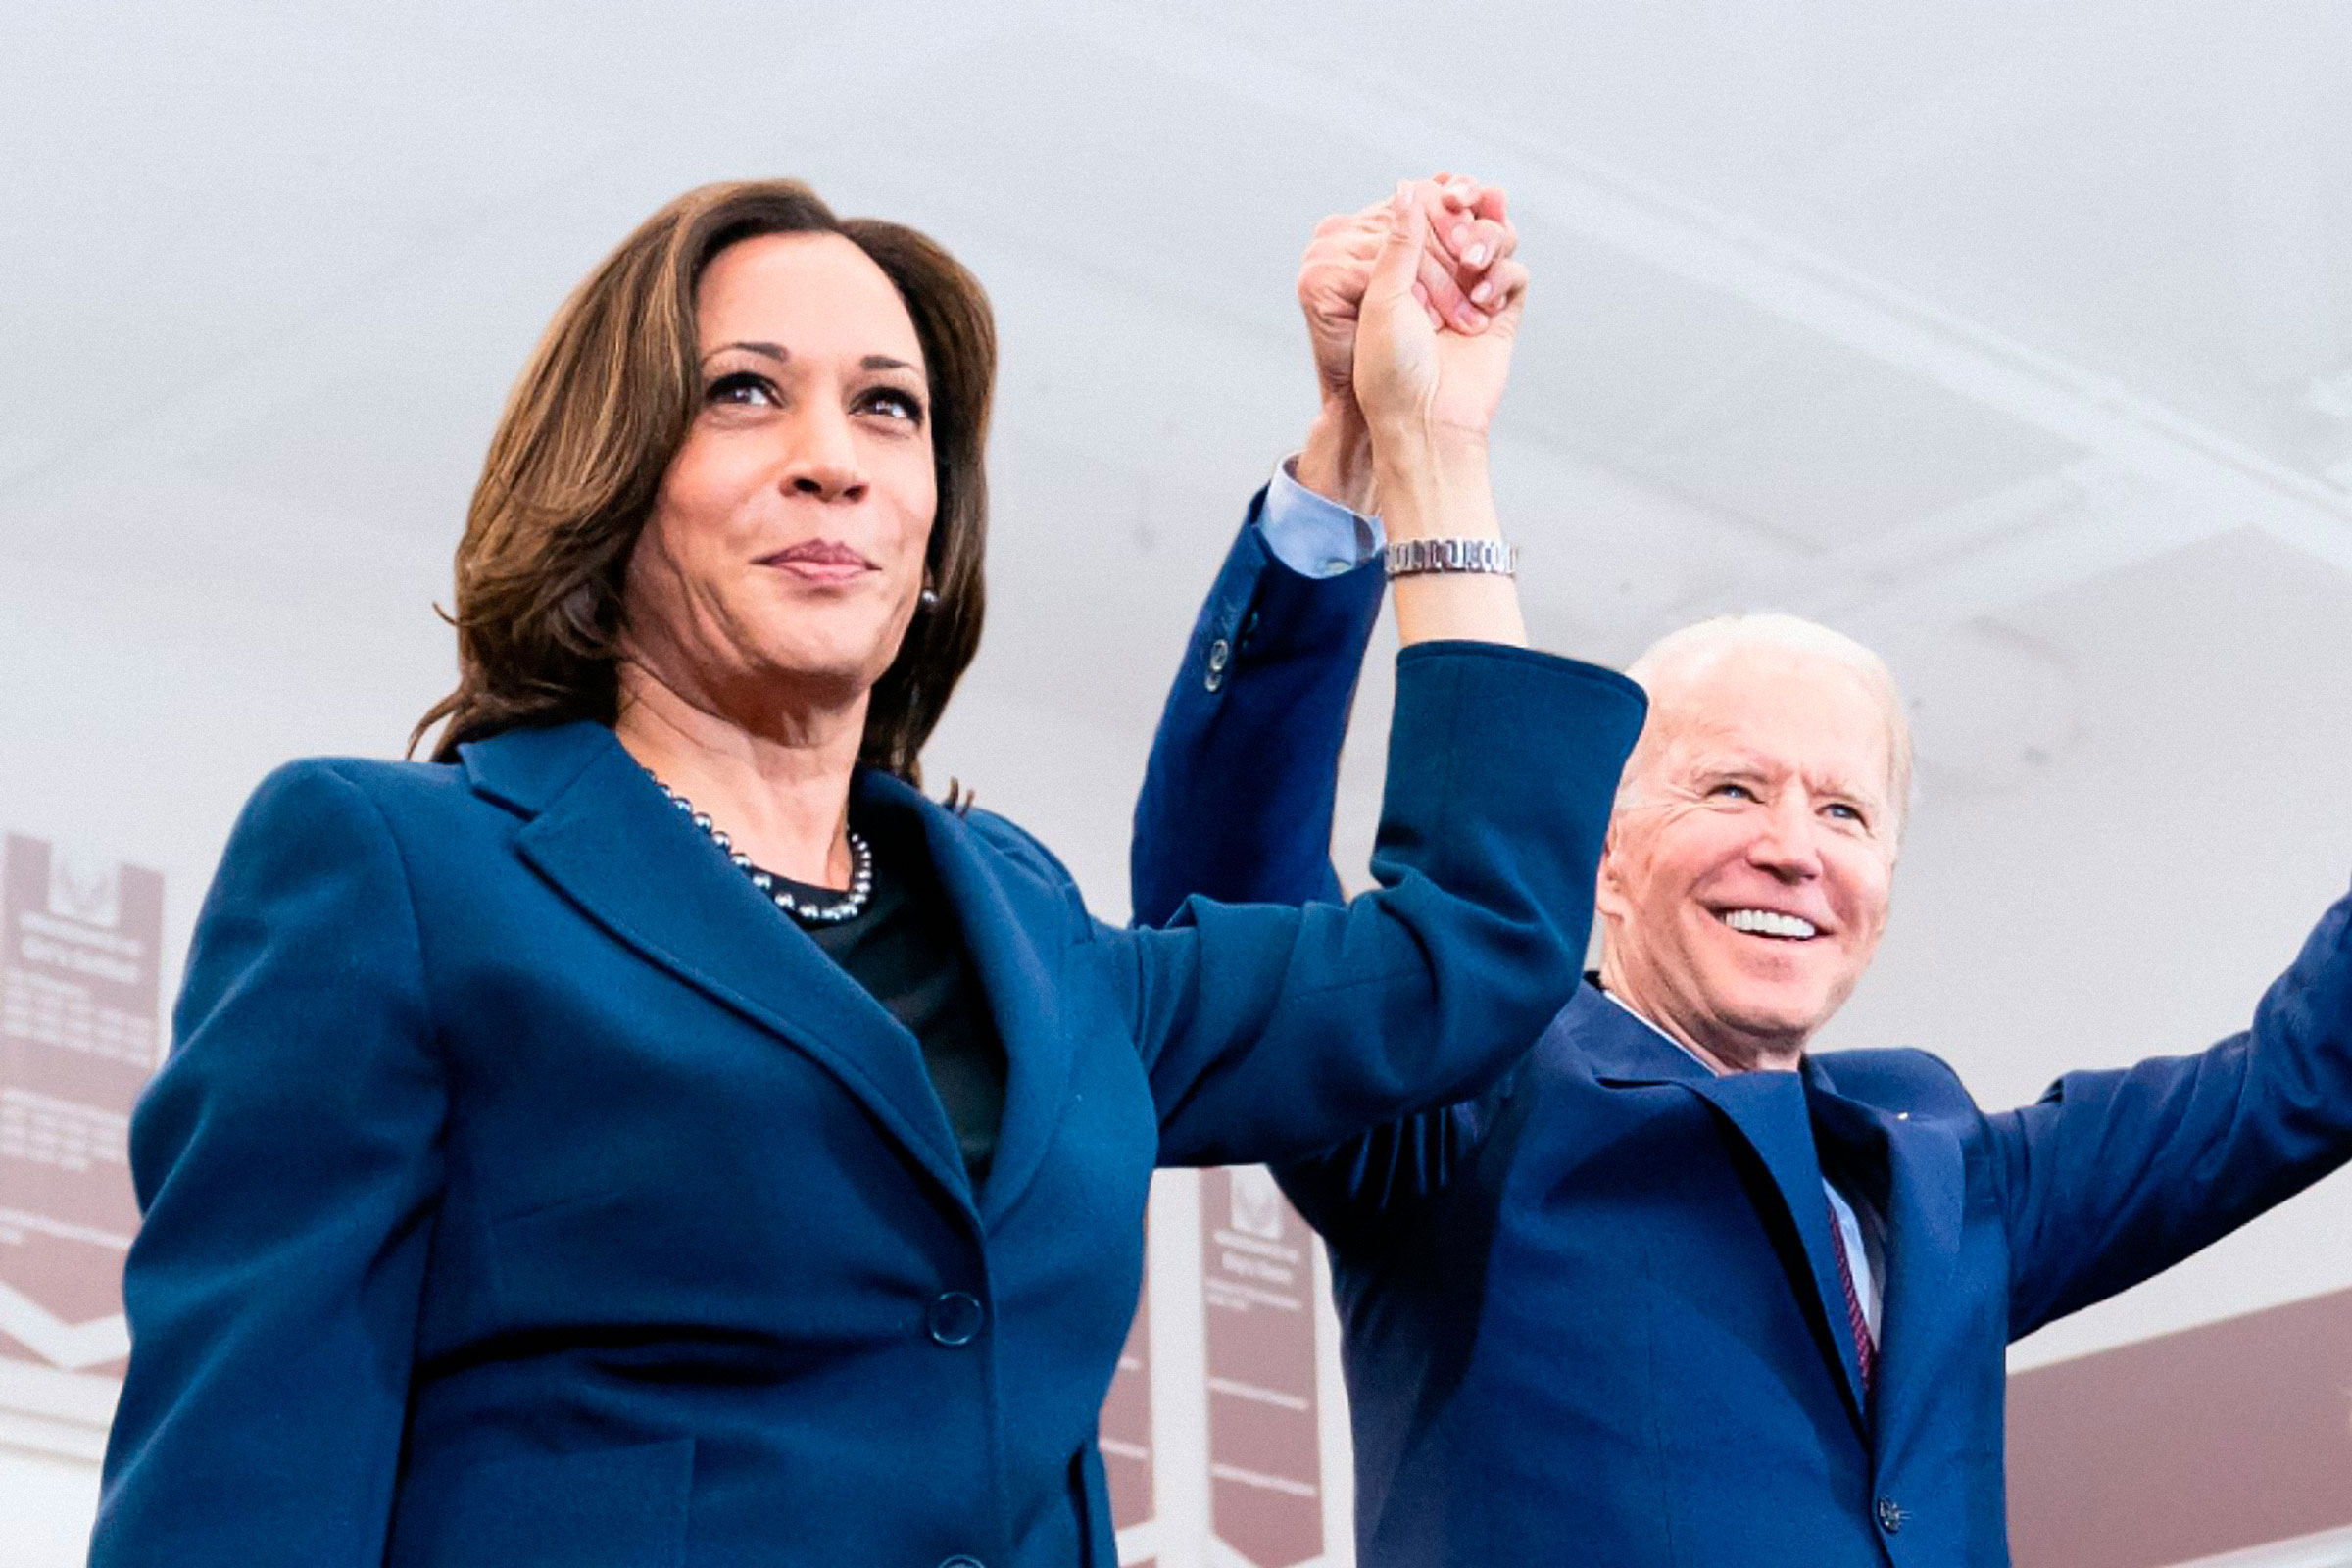 Kamala Harris, a light-skinned Black woman wearing a navy blue suit, holds hands triumphantly with Joe Biden, an older white man with white hair